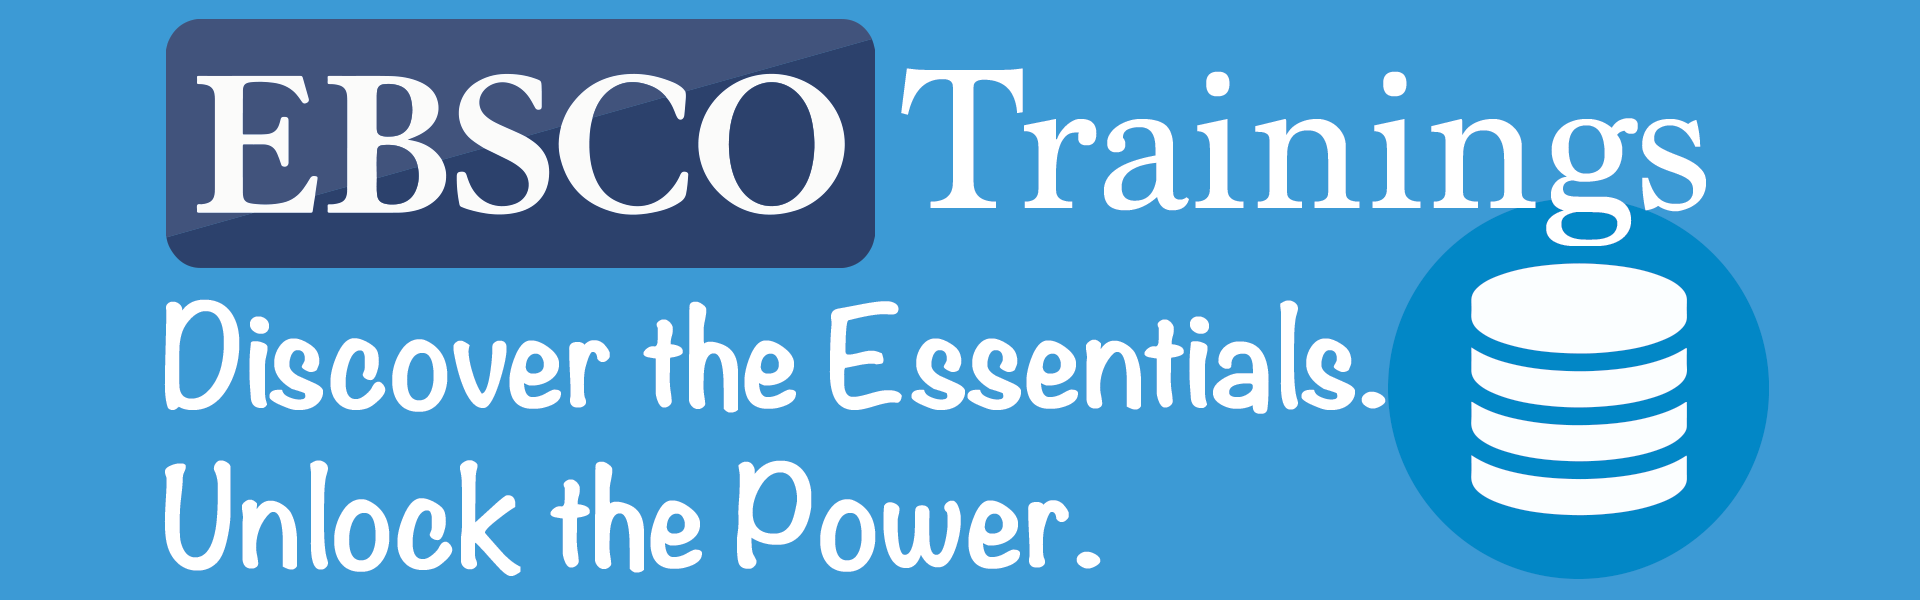 EBSCO Trainings